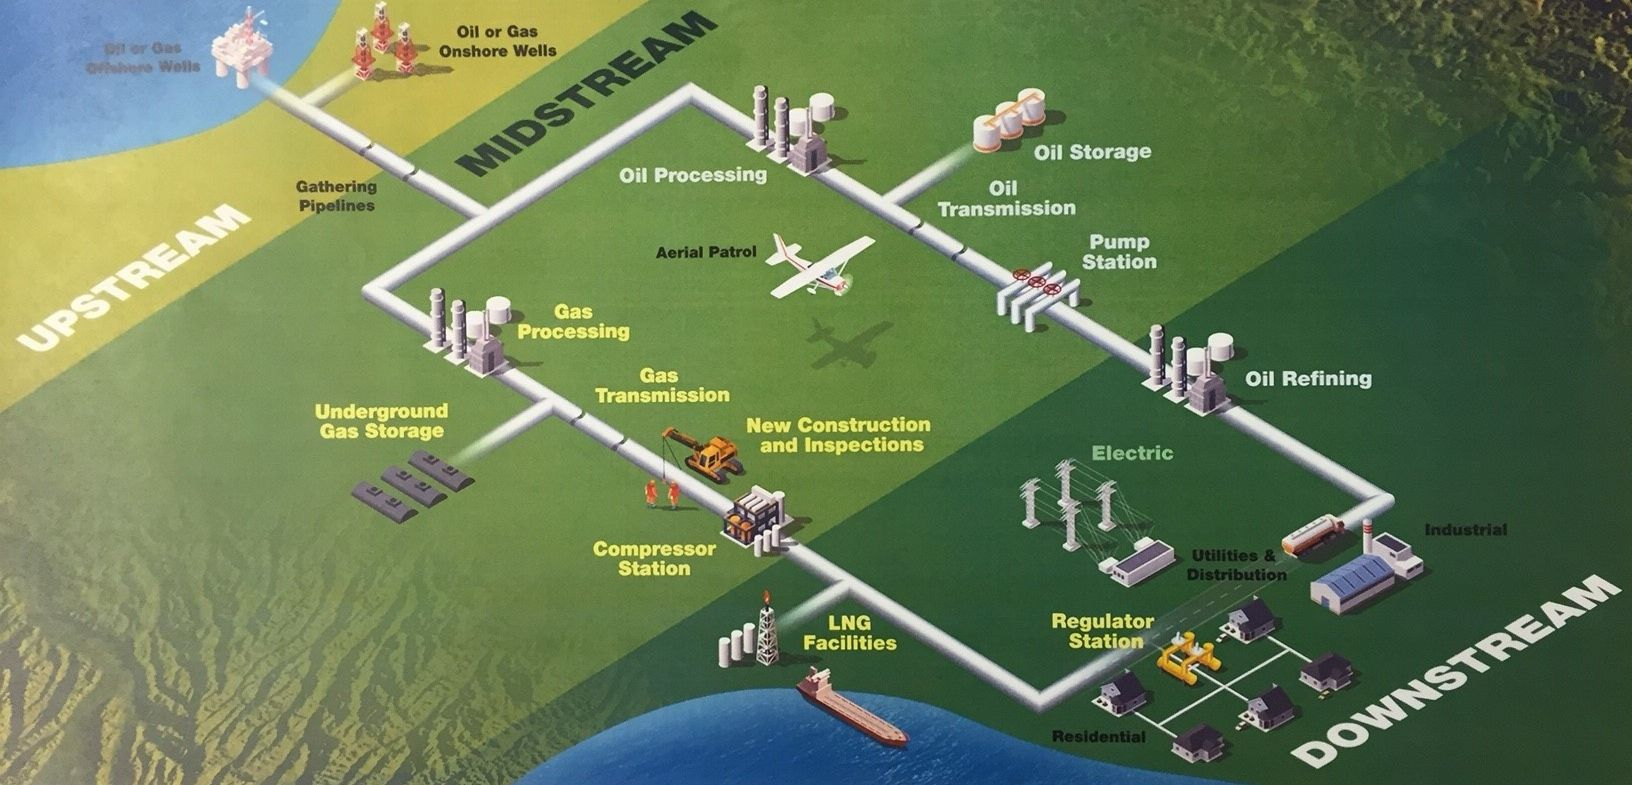 hight resolution of oil and gas production process flow diagram google search